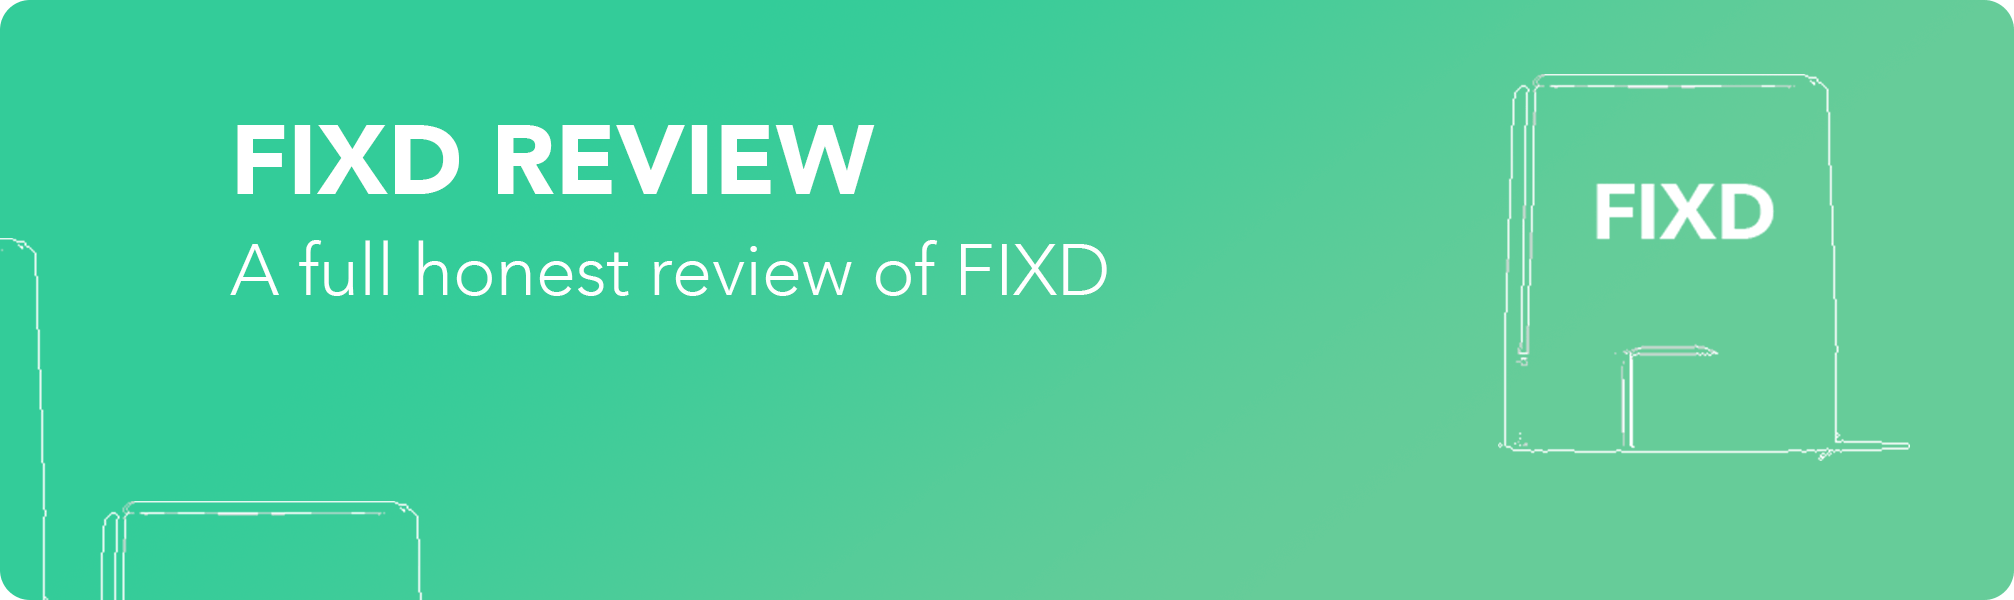 FIXD Reviews